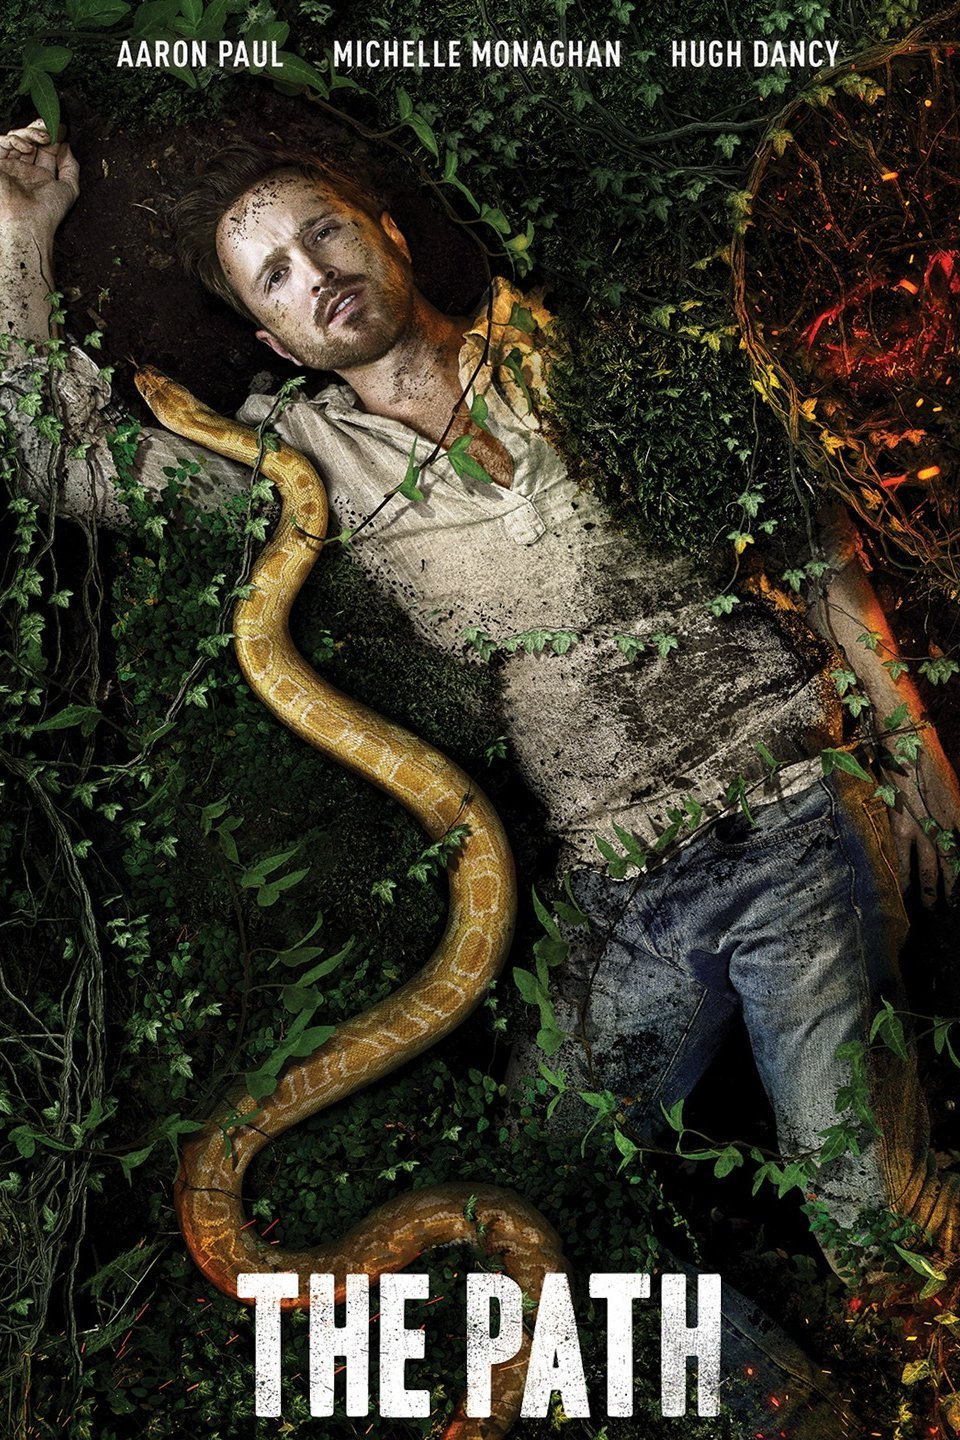 The Path Television Series Poster - Hulu